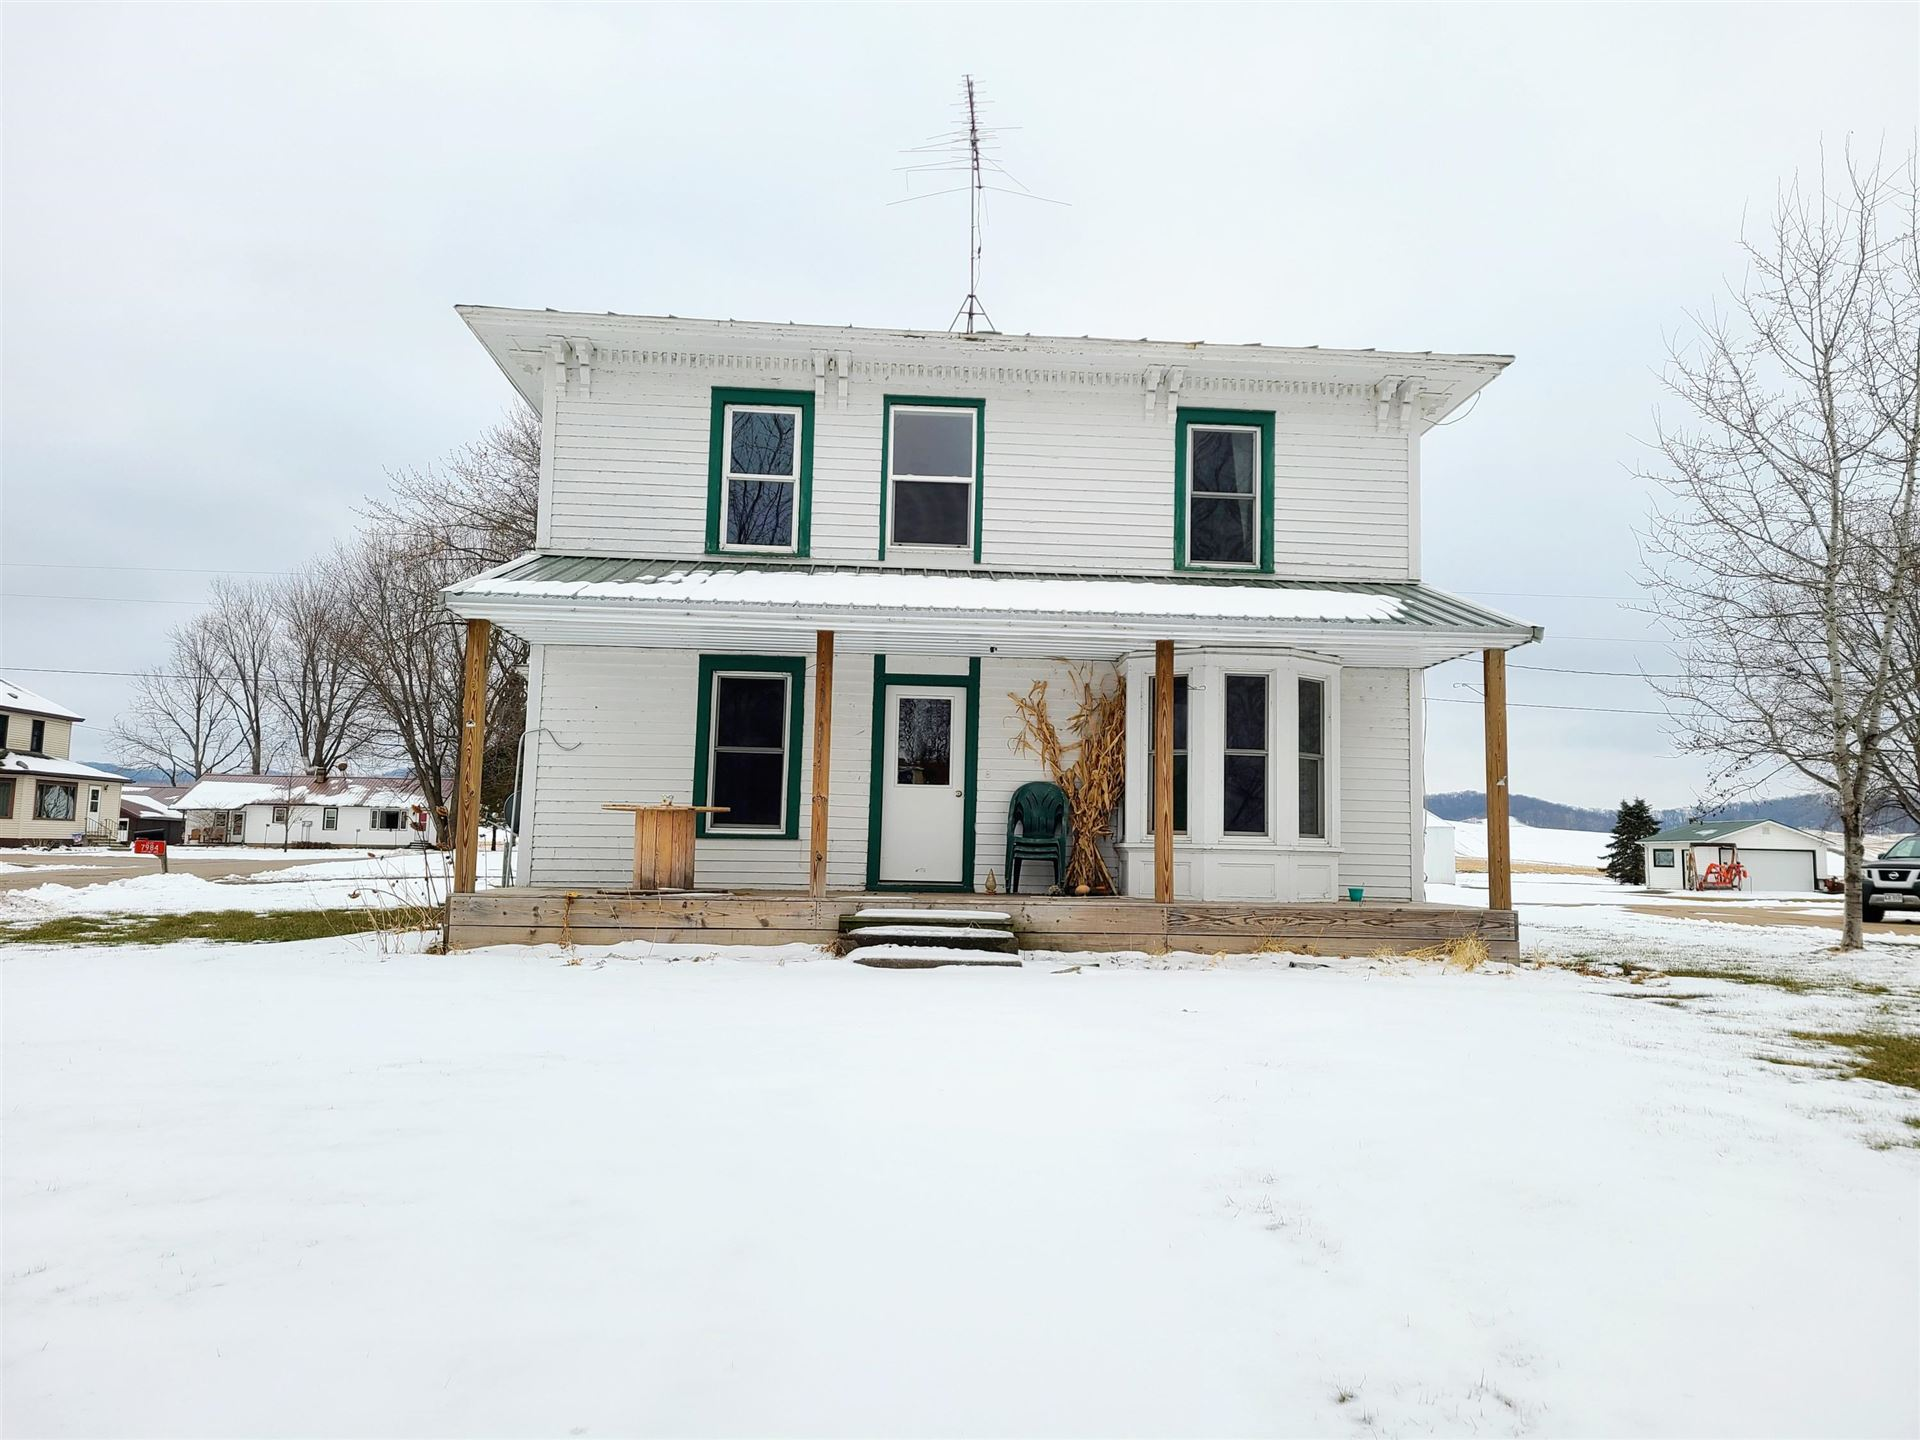 7984 Jancing Ave, Leon, WI 54656 - MLS#: 1723373